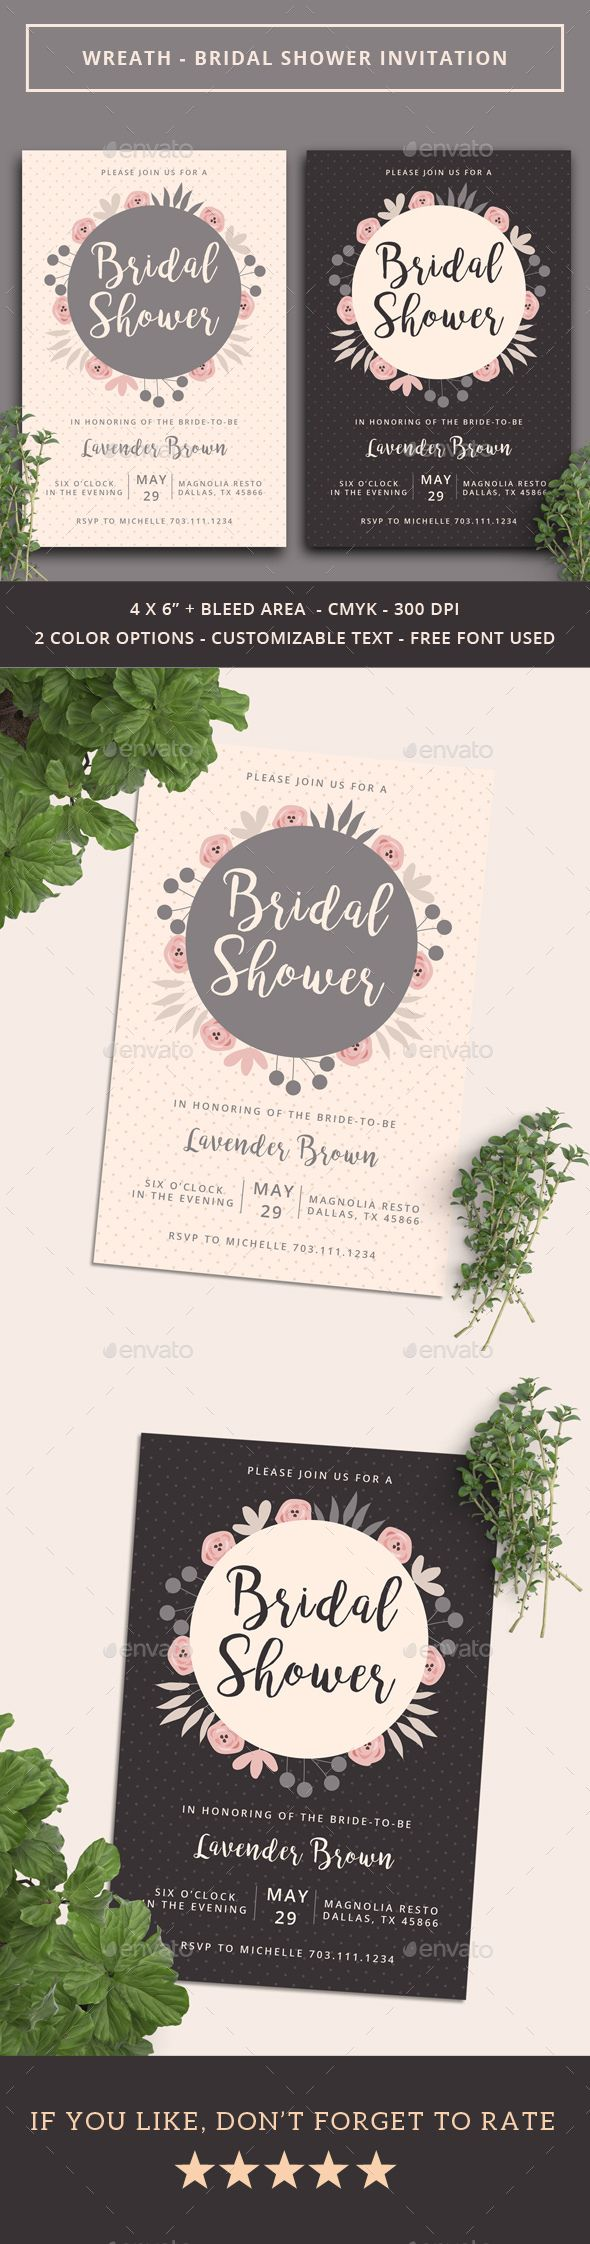 free wedding invitation psd%0A Wreath  Bridal Shower Invitation